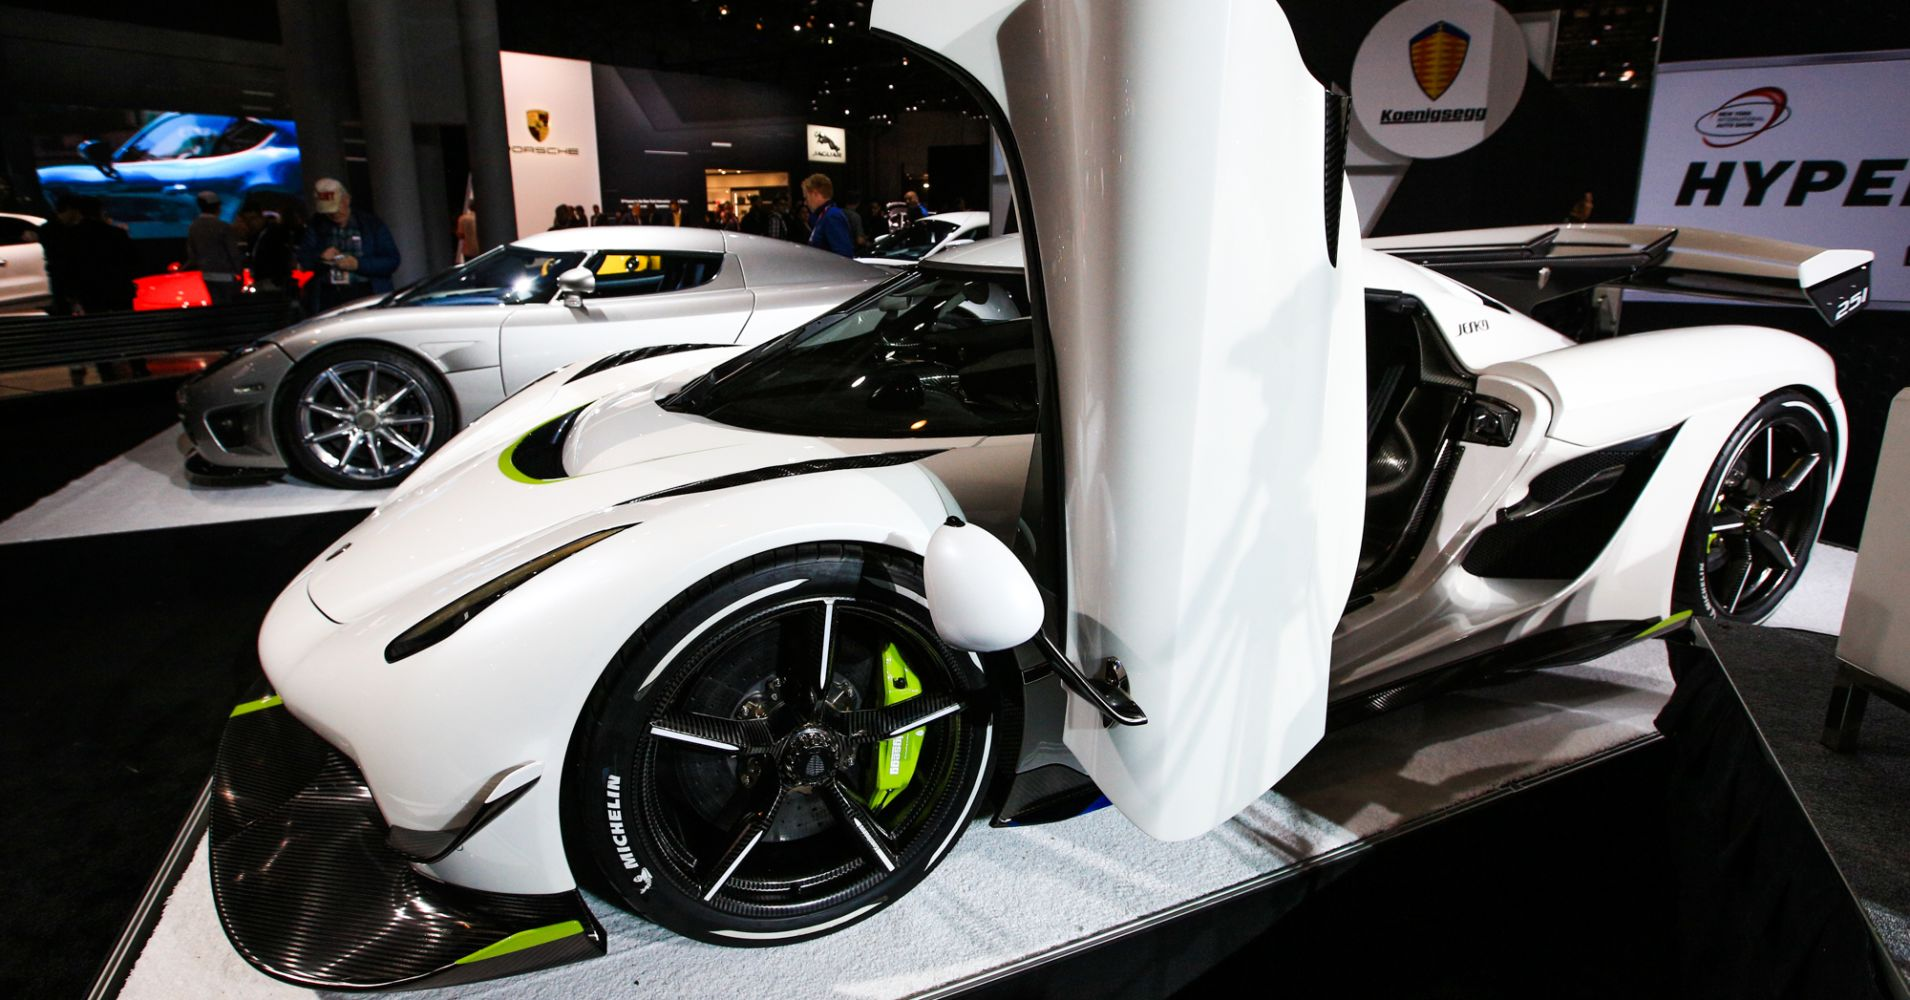 The fastest cars debuting at New York auto show can hit 60 in under 2 seconds